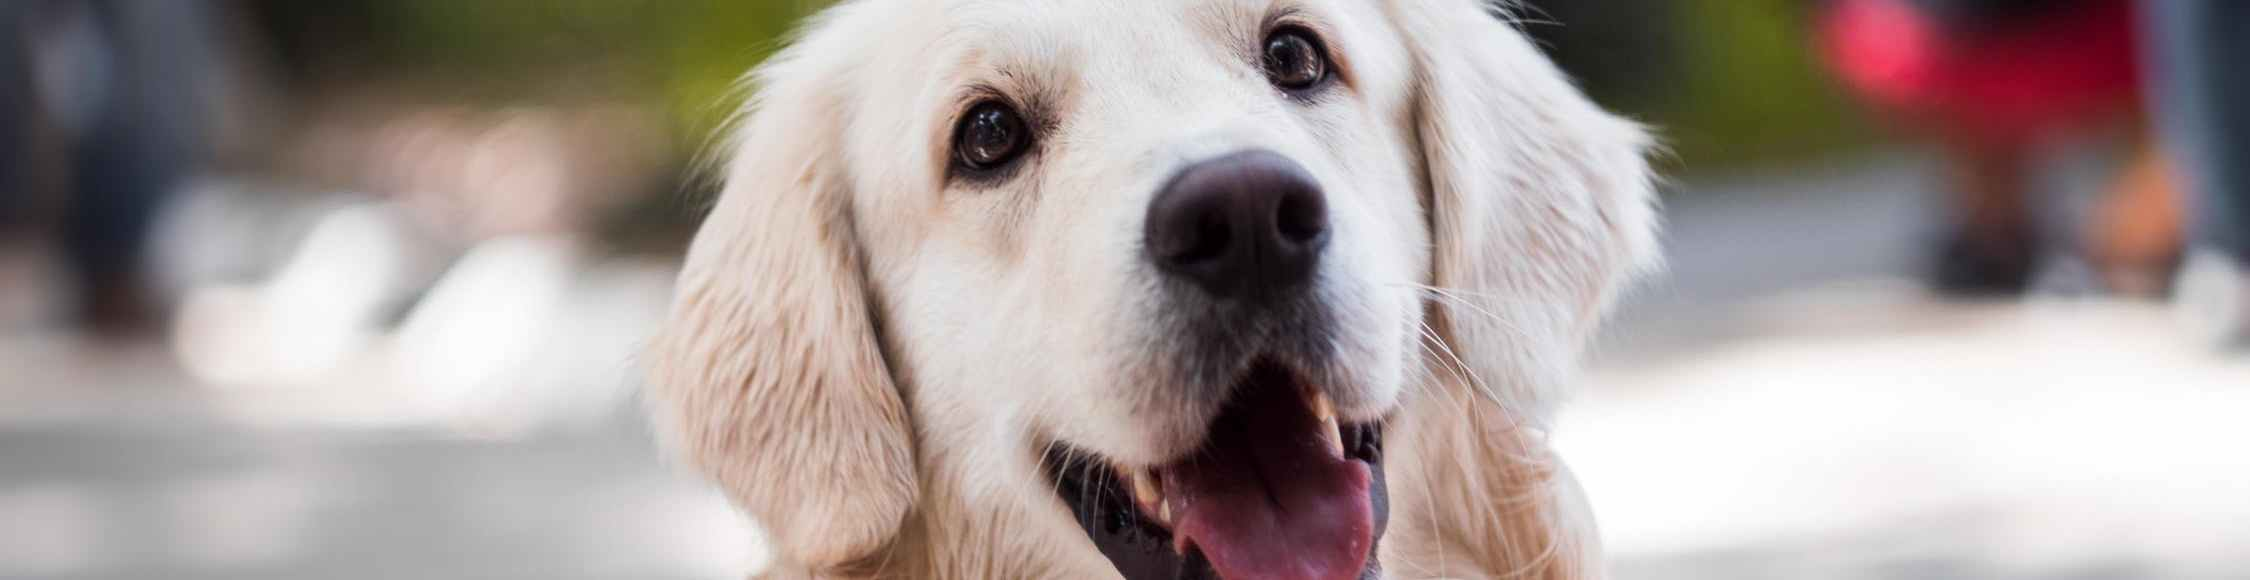 Dogs diet influences oral health